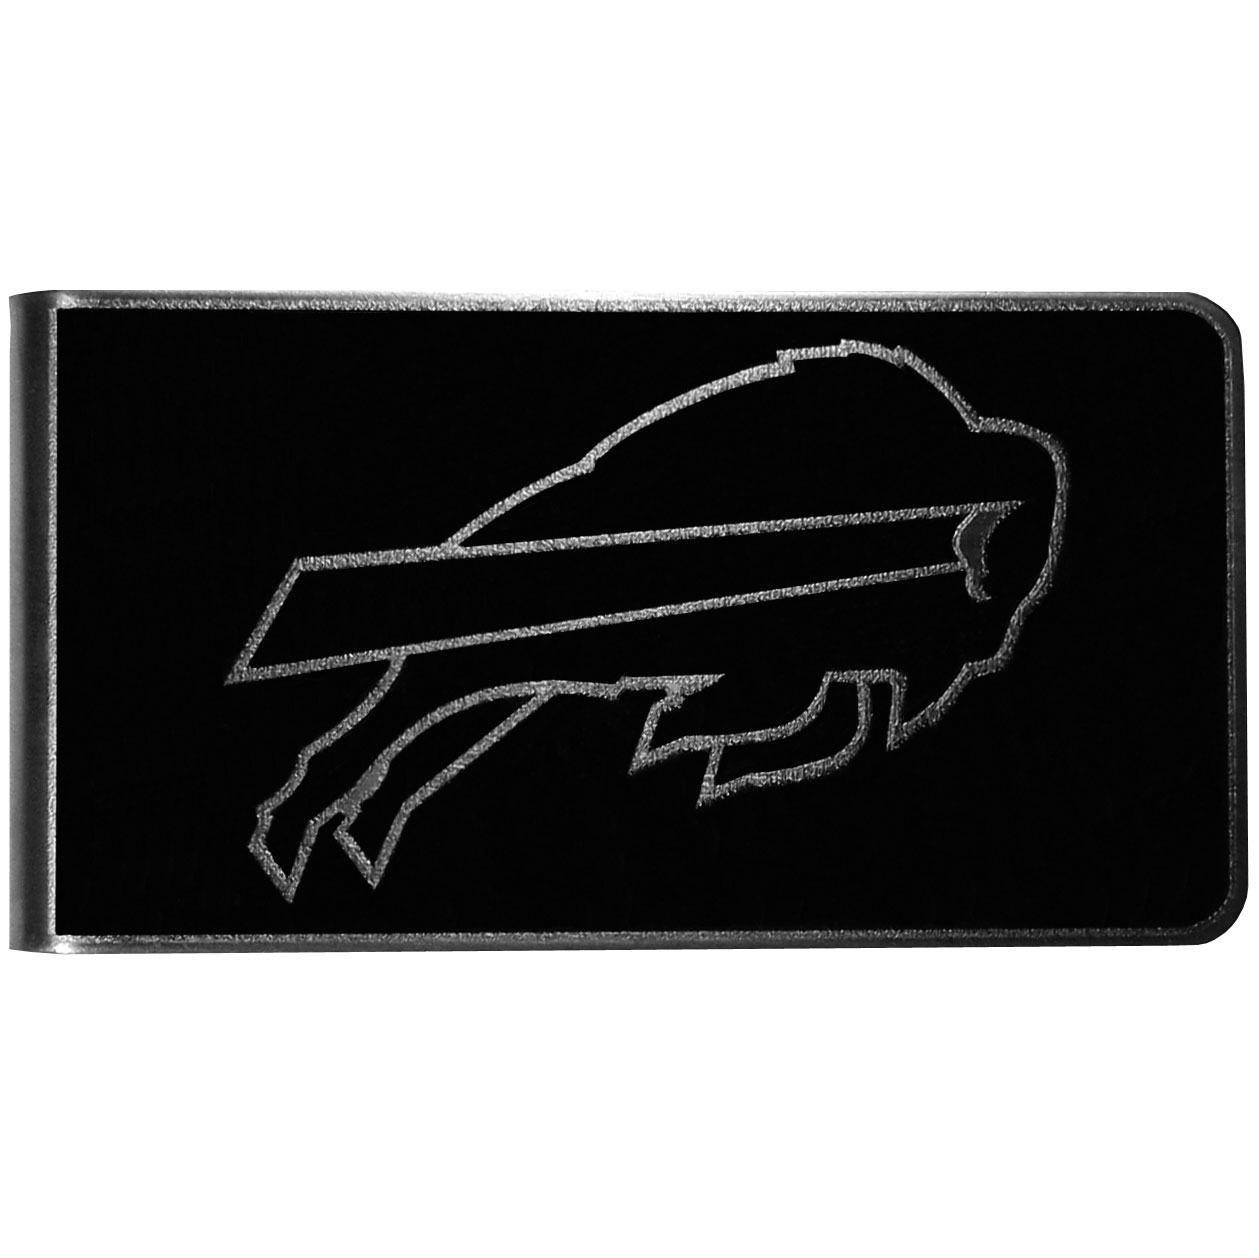 Buffalo Bills Black and Steel Money Clip - Our monochromatic steel money clips have a classic style and superior quality. The strong, steel clip has a black overlay of the Buffalo Bills logo over the brushed metal finish creating a stylish men's fashion accessory that would make any fan proud.